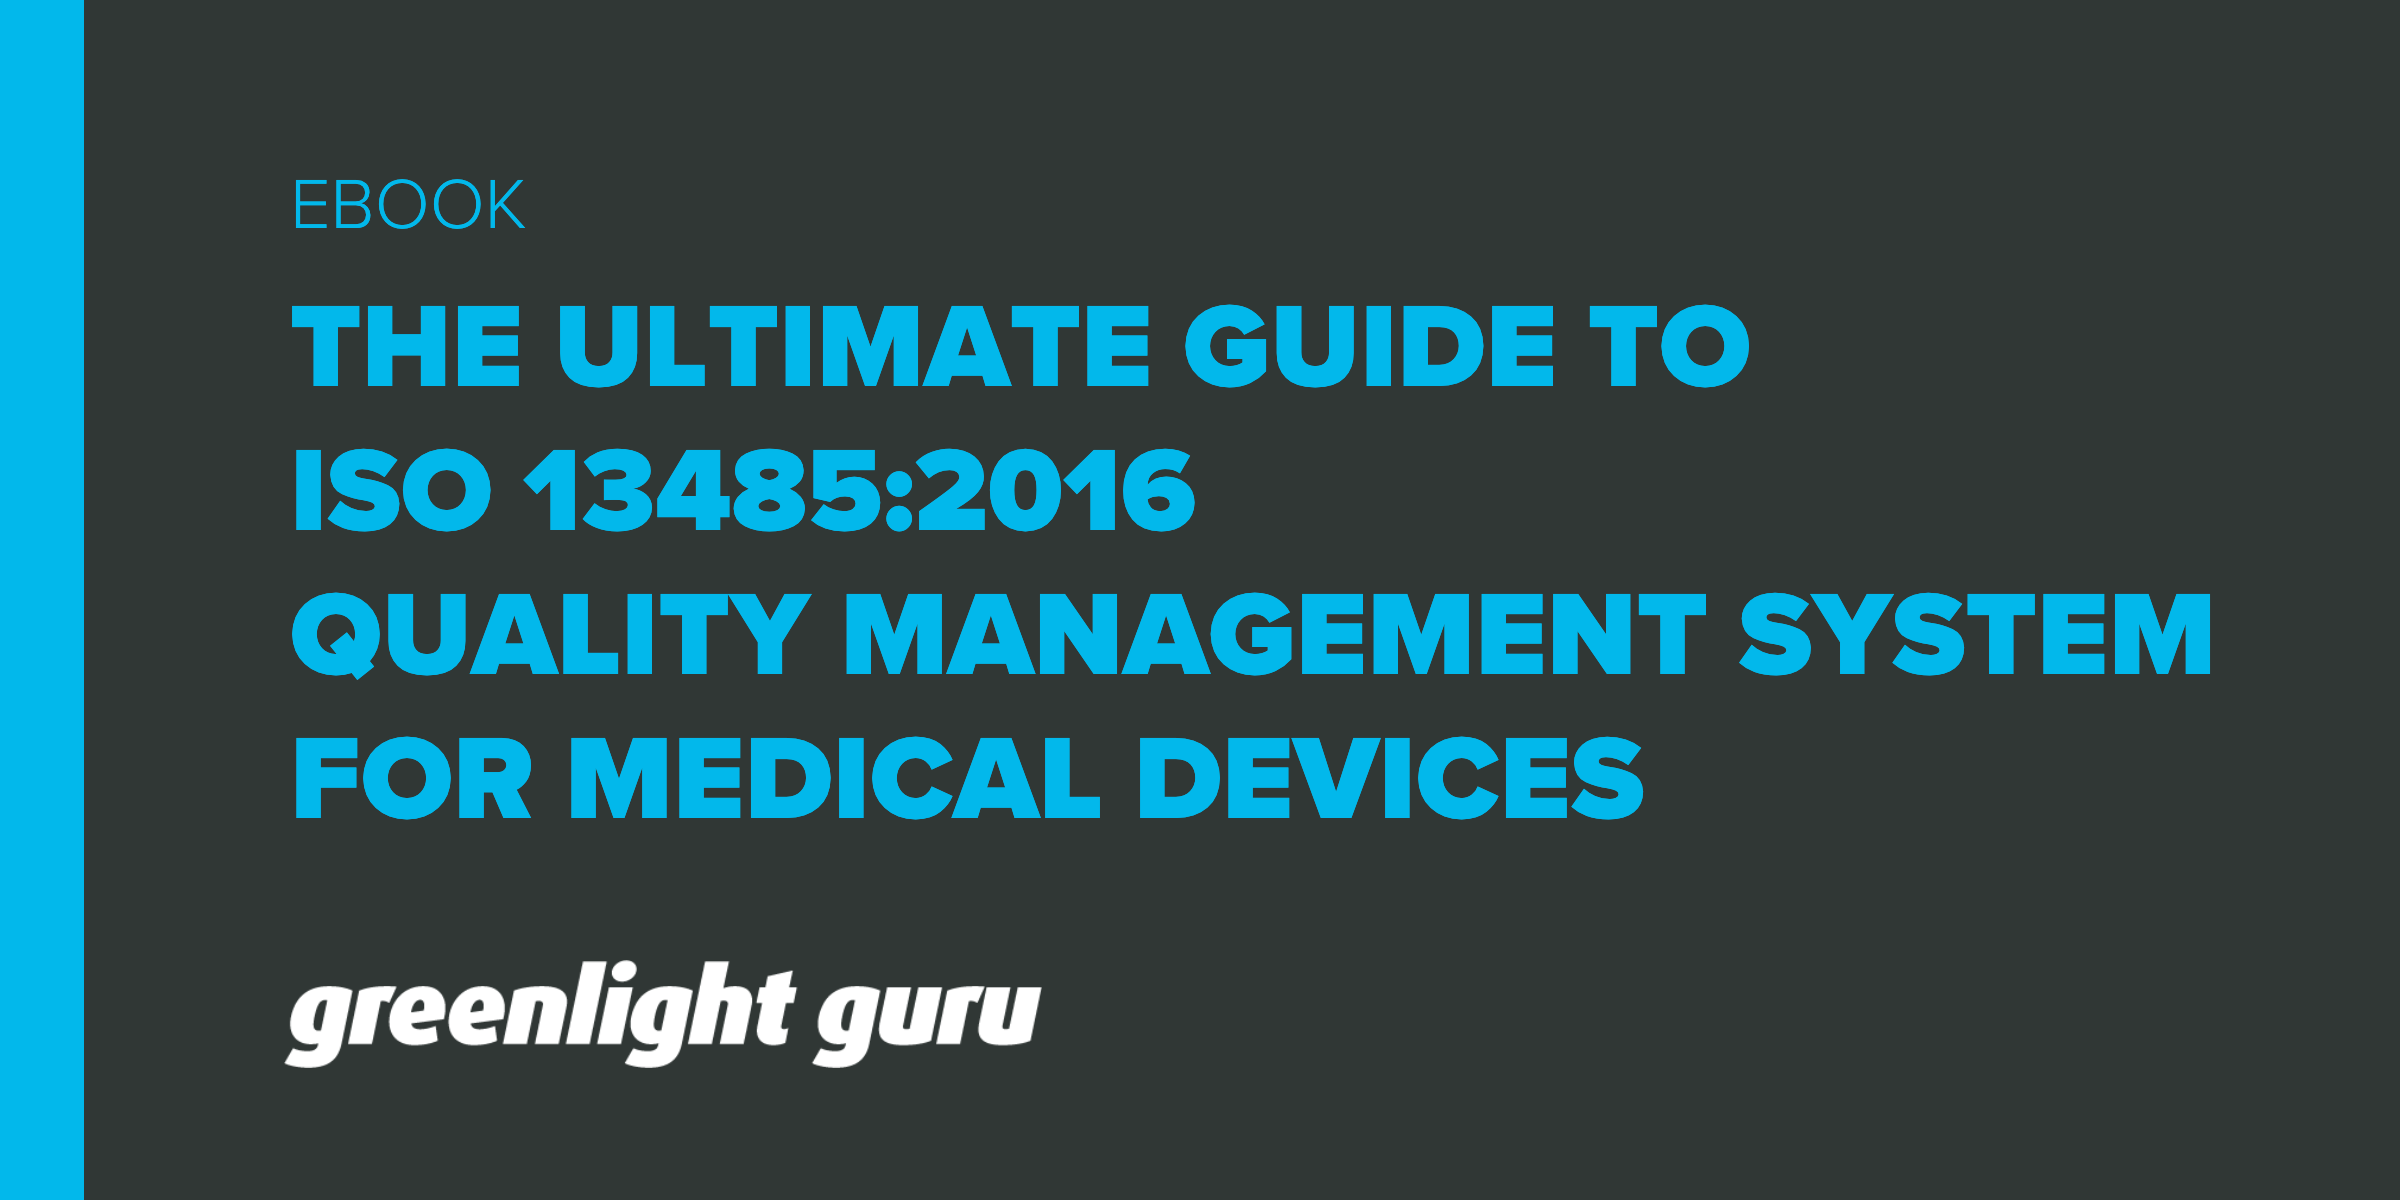 ISO 13485 - Ultimate Guide to Quality Management System (QMS) for Medical Devices - Featured Image